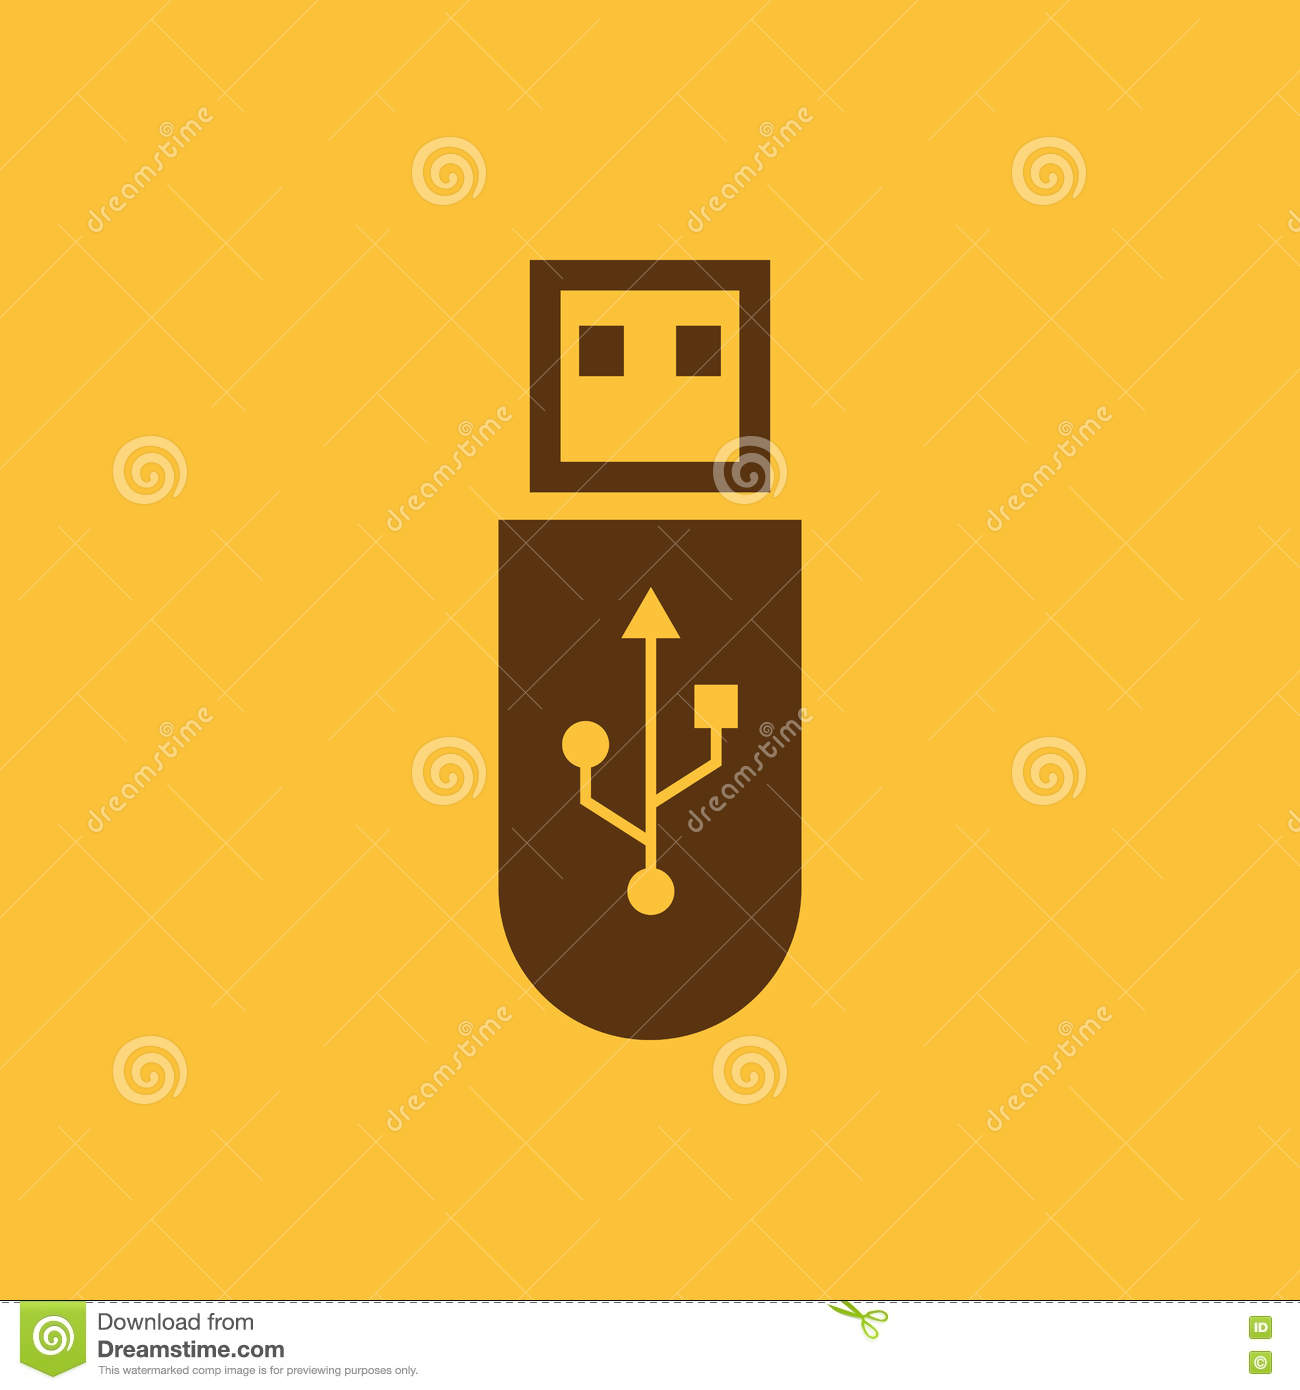 The usb icon transfer and connection data usb symbol ui web the usb icon transfer and connection data usb symbol ui web logo sign flat design app stock biocorpaavc